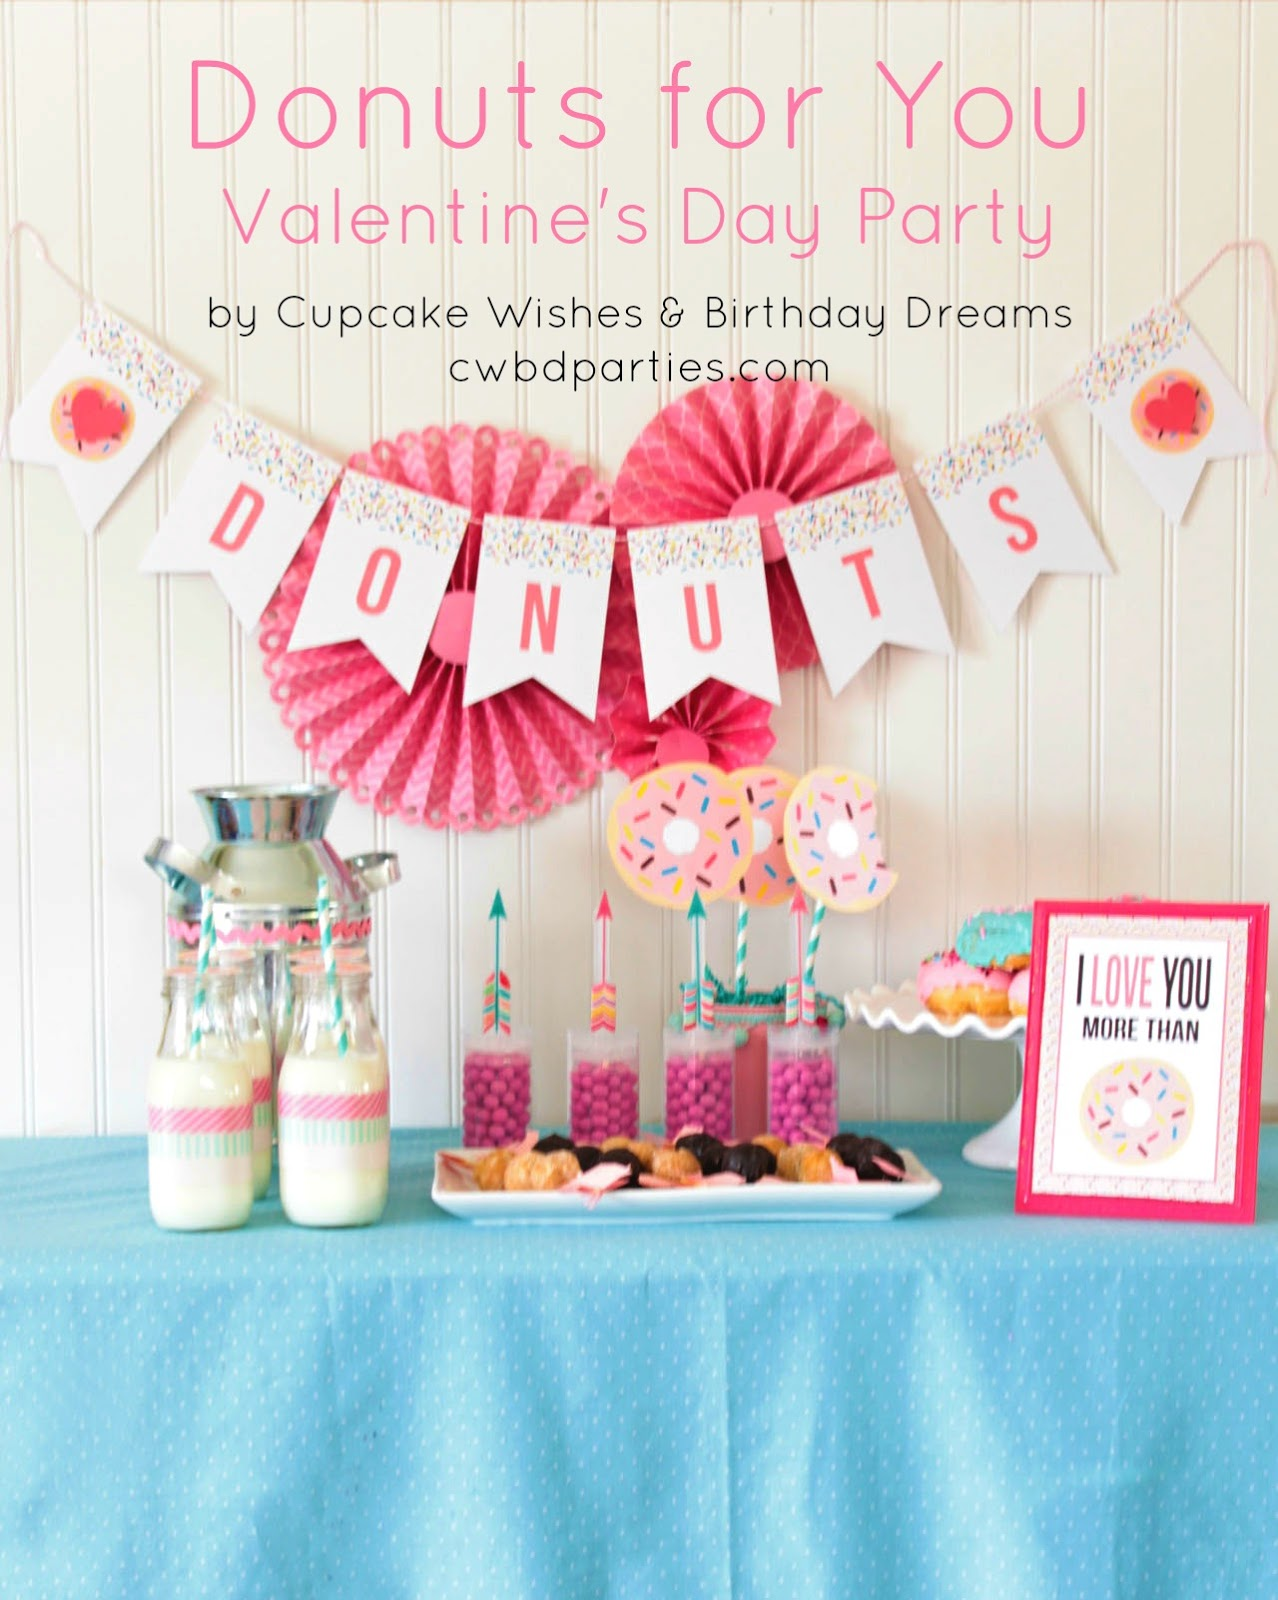 Cupcake Wishes Birthday Dreams Donuts For You Valentine S Day Party